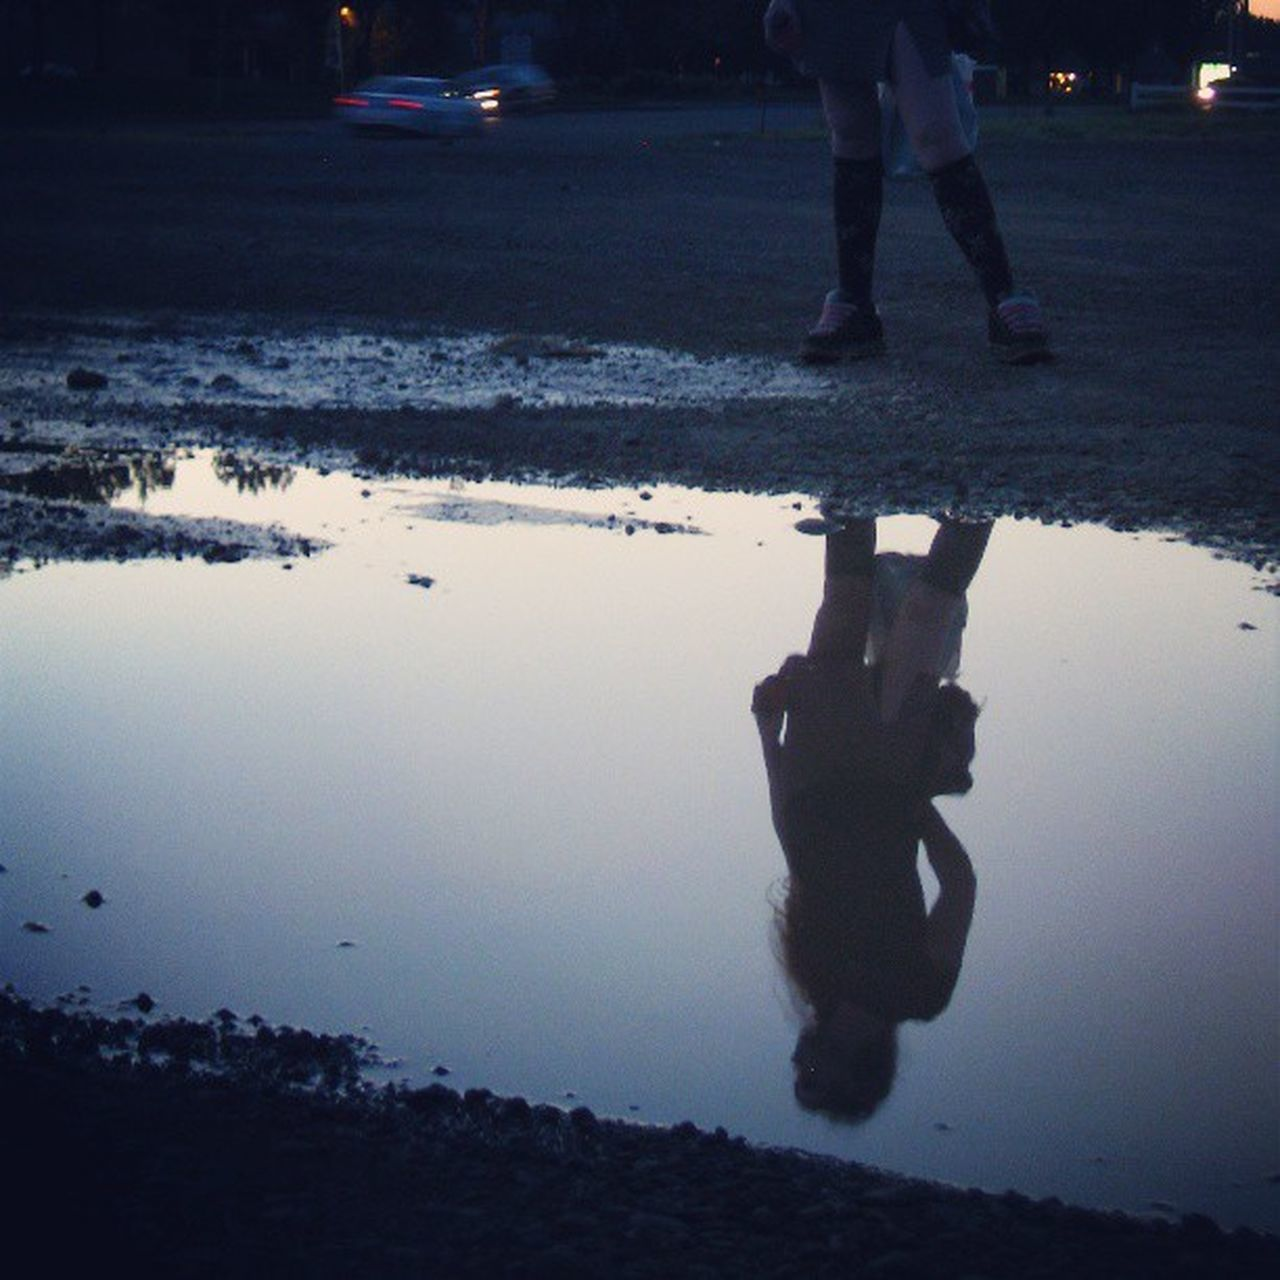 walking, real people, low section, reflection, puddle, human leg, water, one person, standing, outdoors, men, day, nature, human body part, sky, people